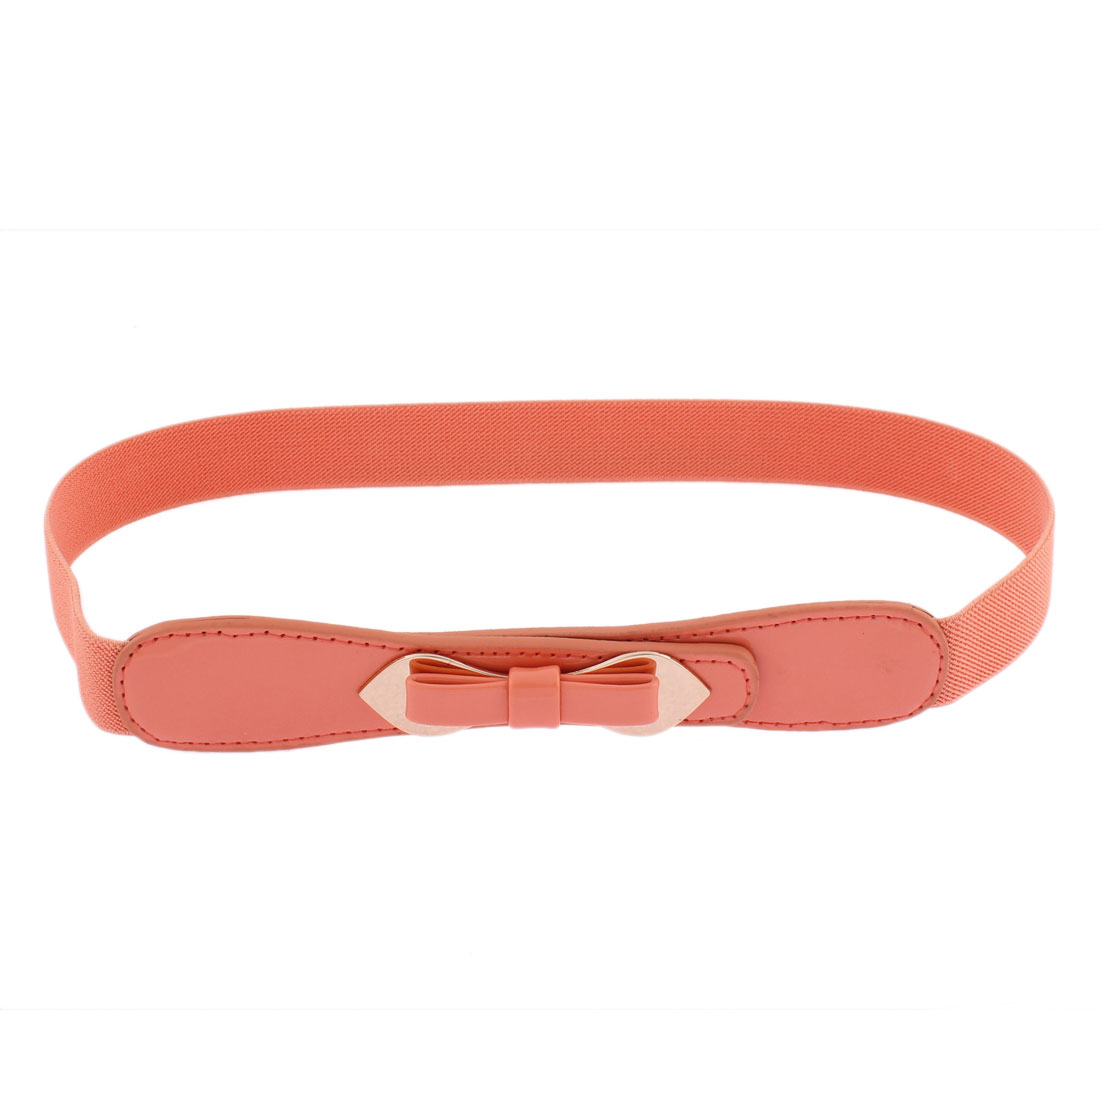 Double Pin Buckle Adjustable Elastic Waistband Waist Belt Coral Pink